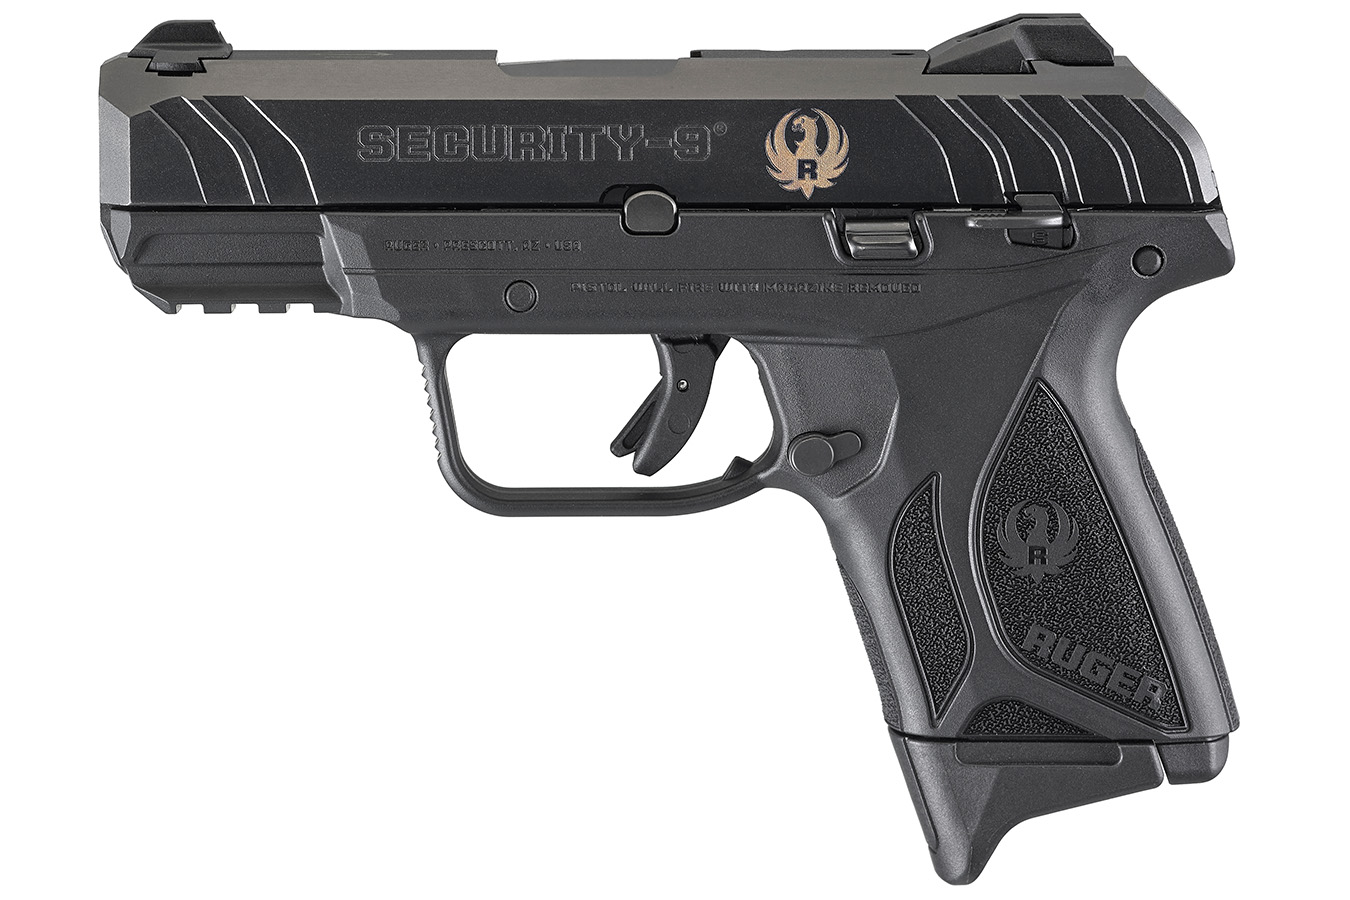 Security-9 Compact 9mm Navy Seals Foundation Exclusive